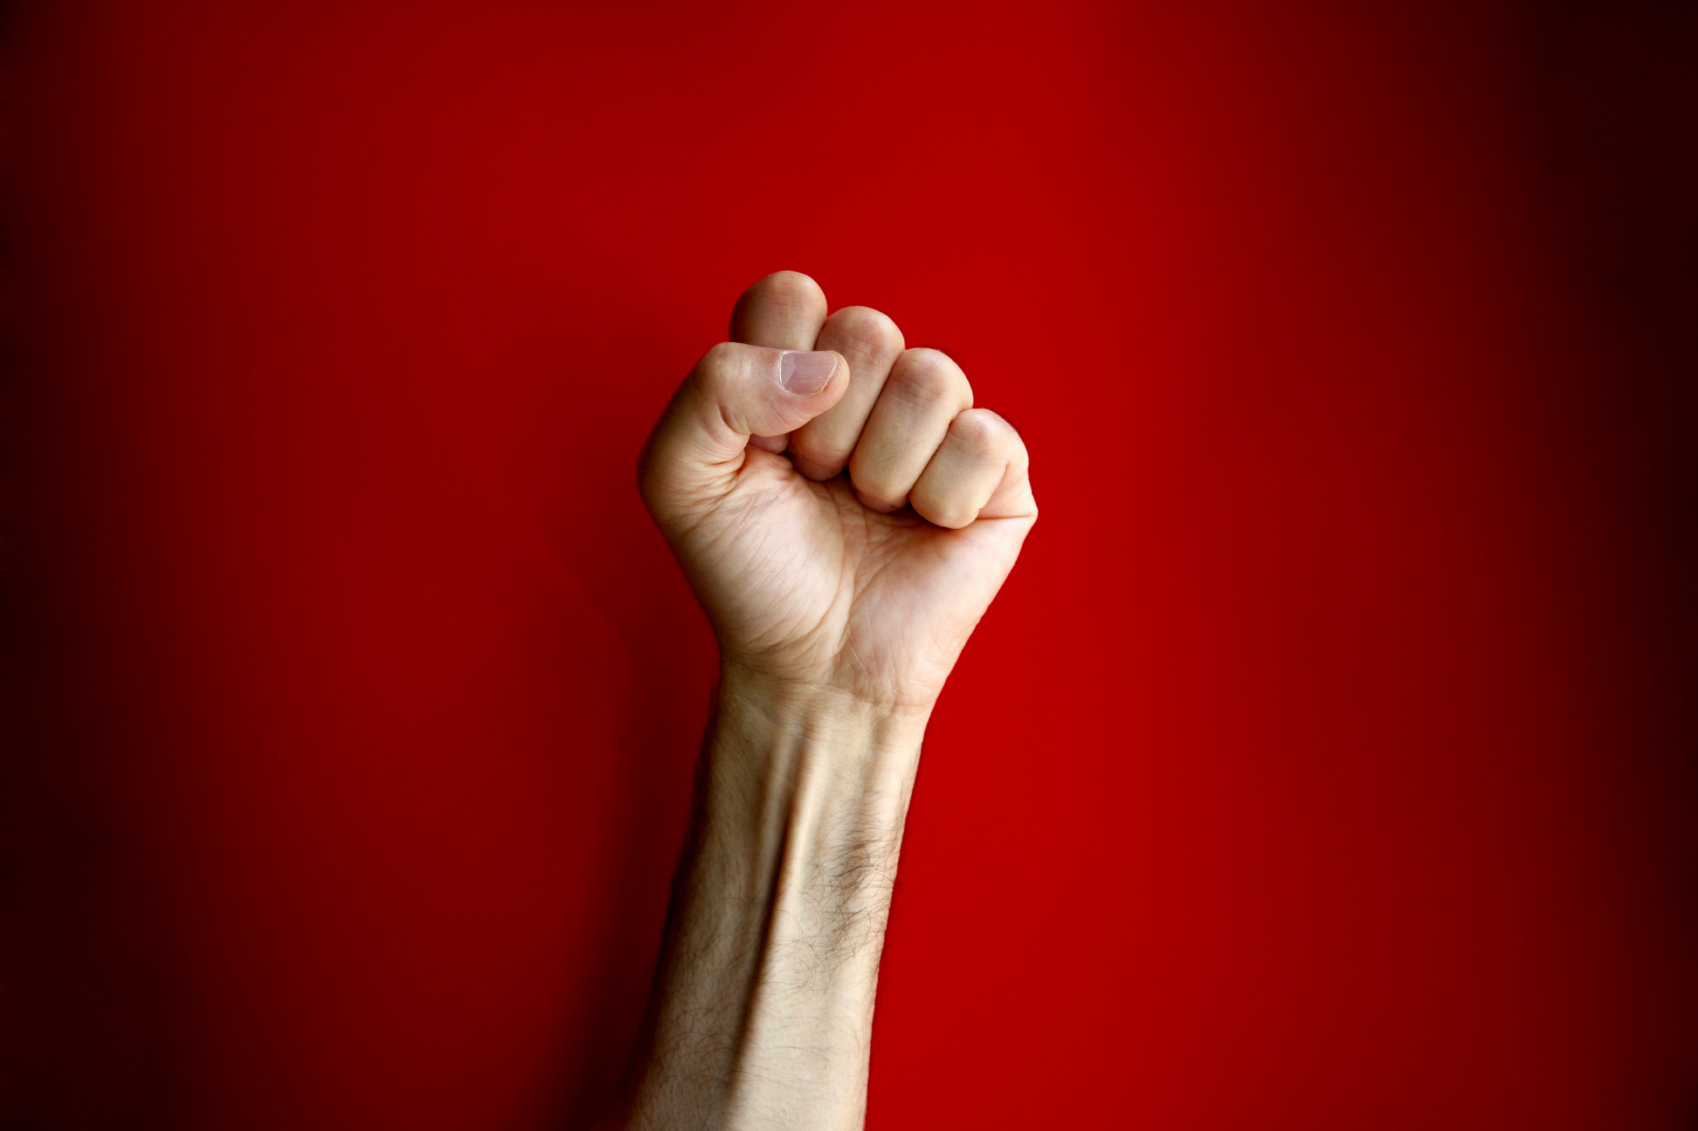 Clenched Fist on Red Background - CARP